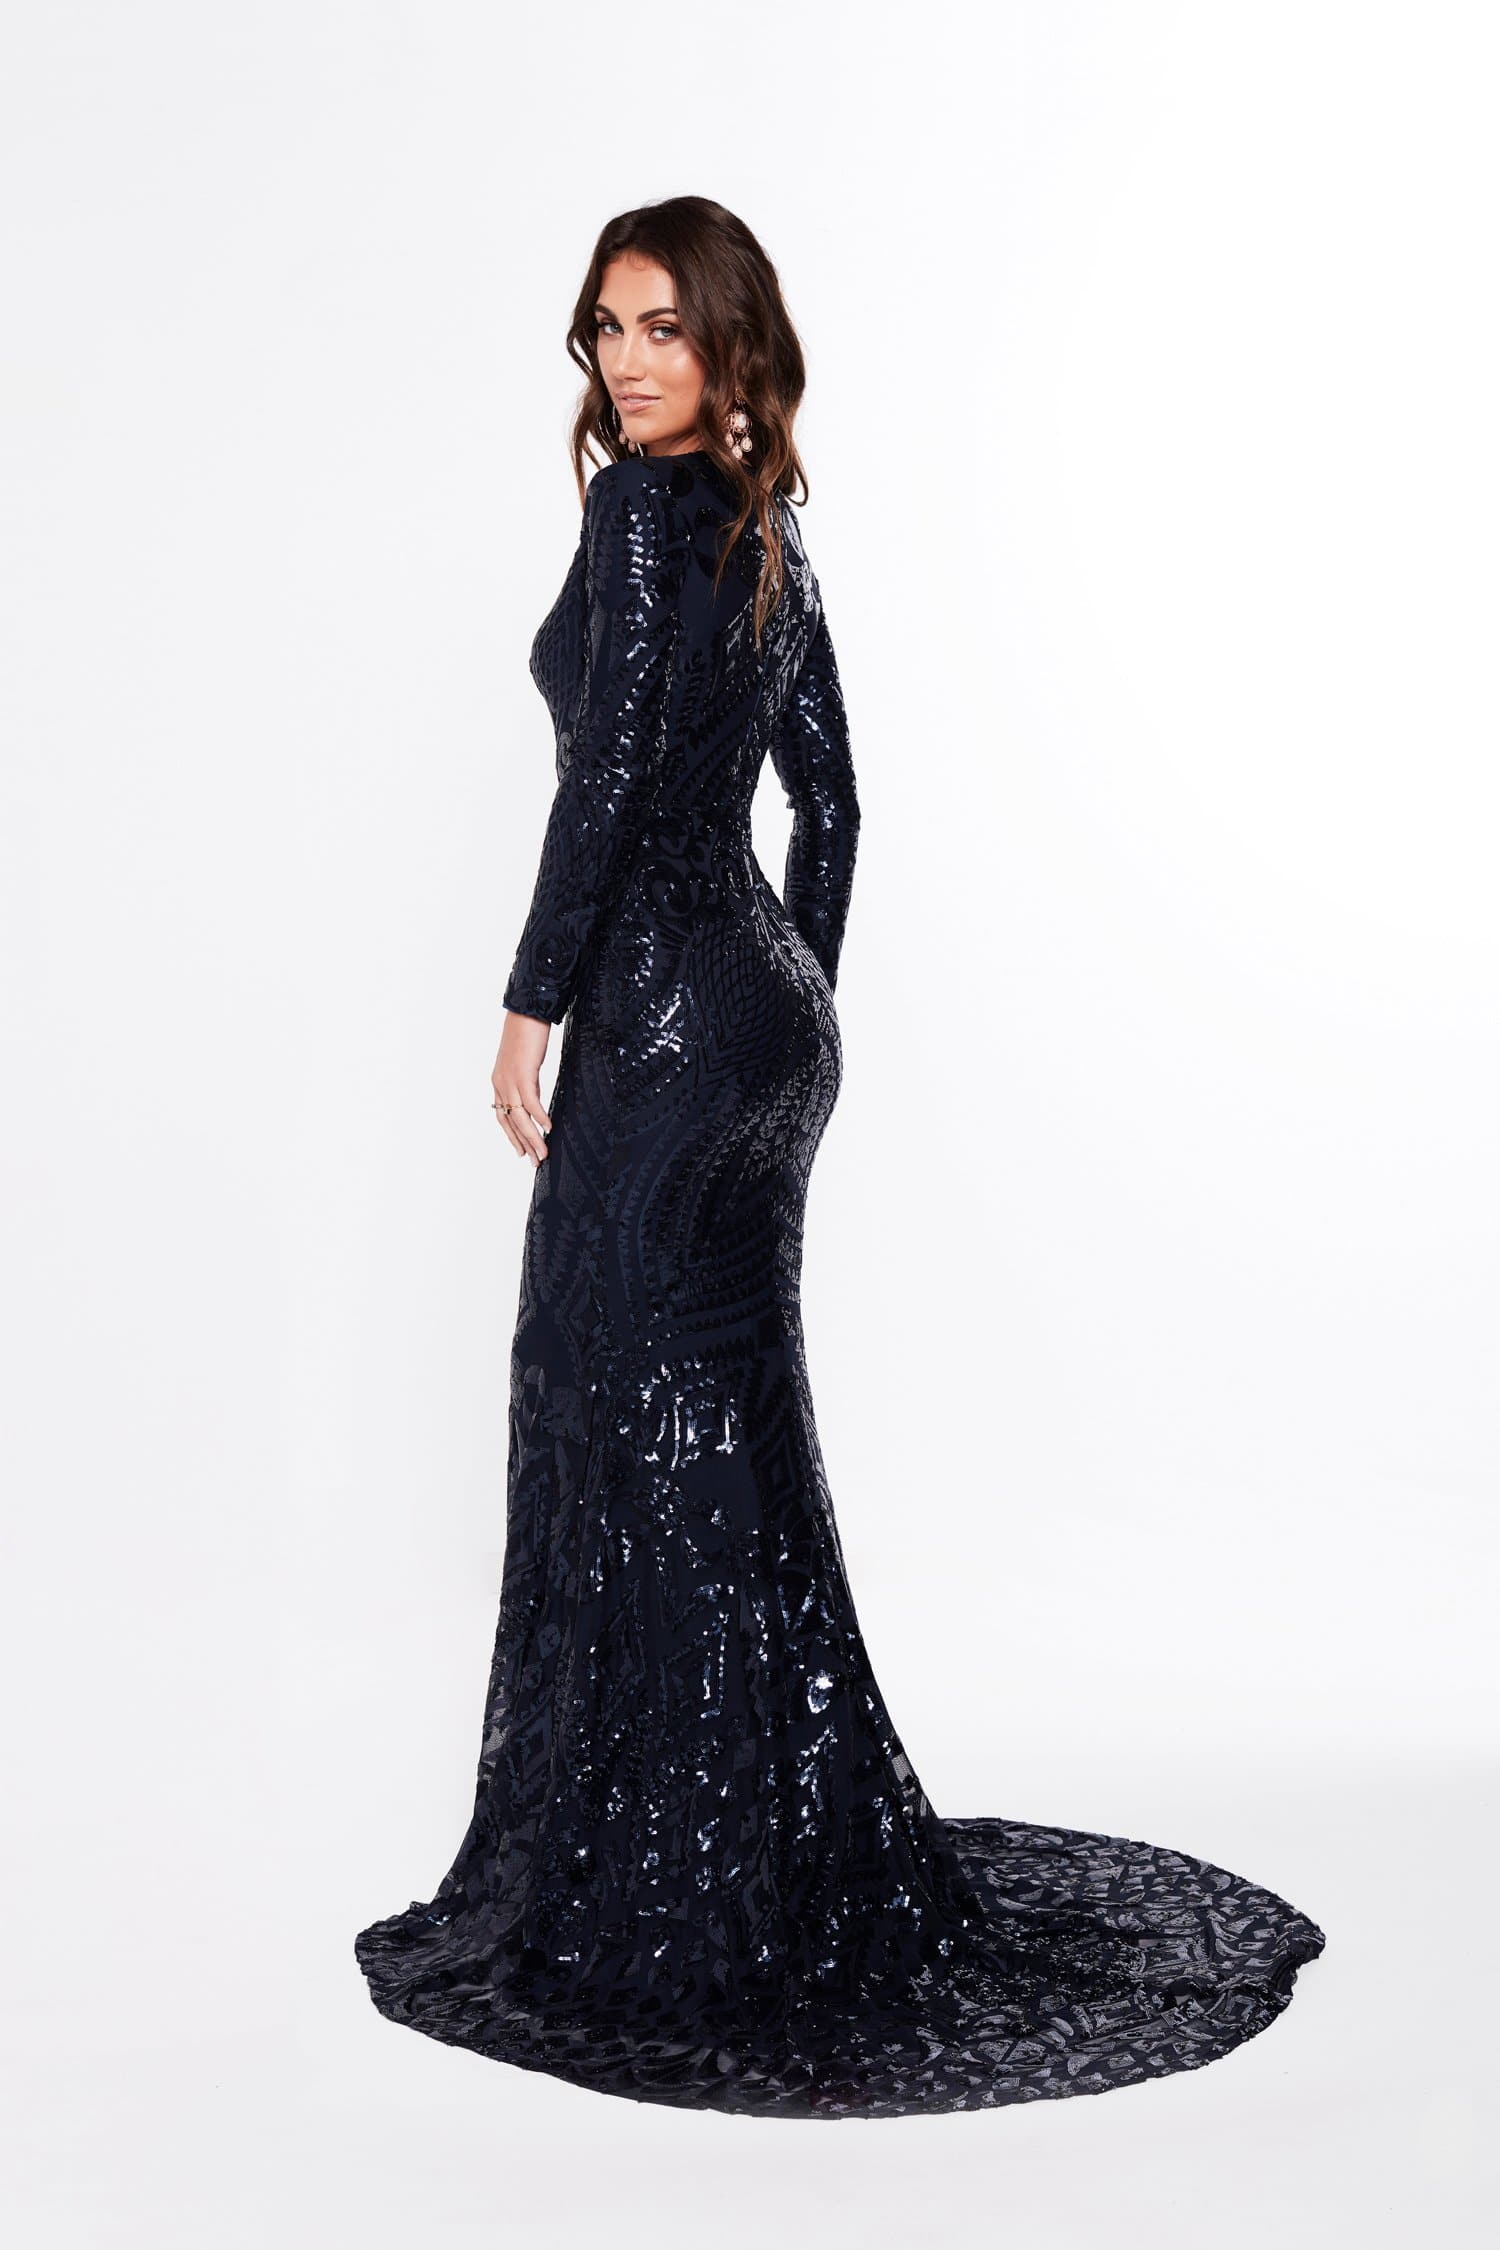 A&N Julieta - Navy Sequin Gown with Long Sleeves and Mermaid Train